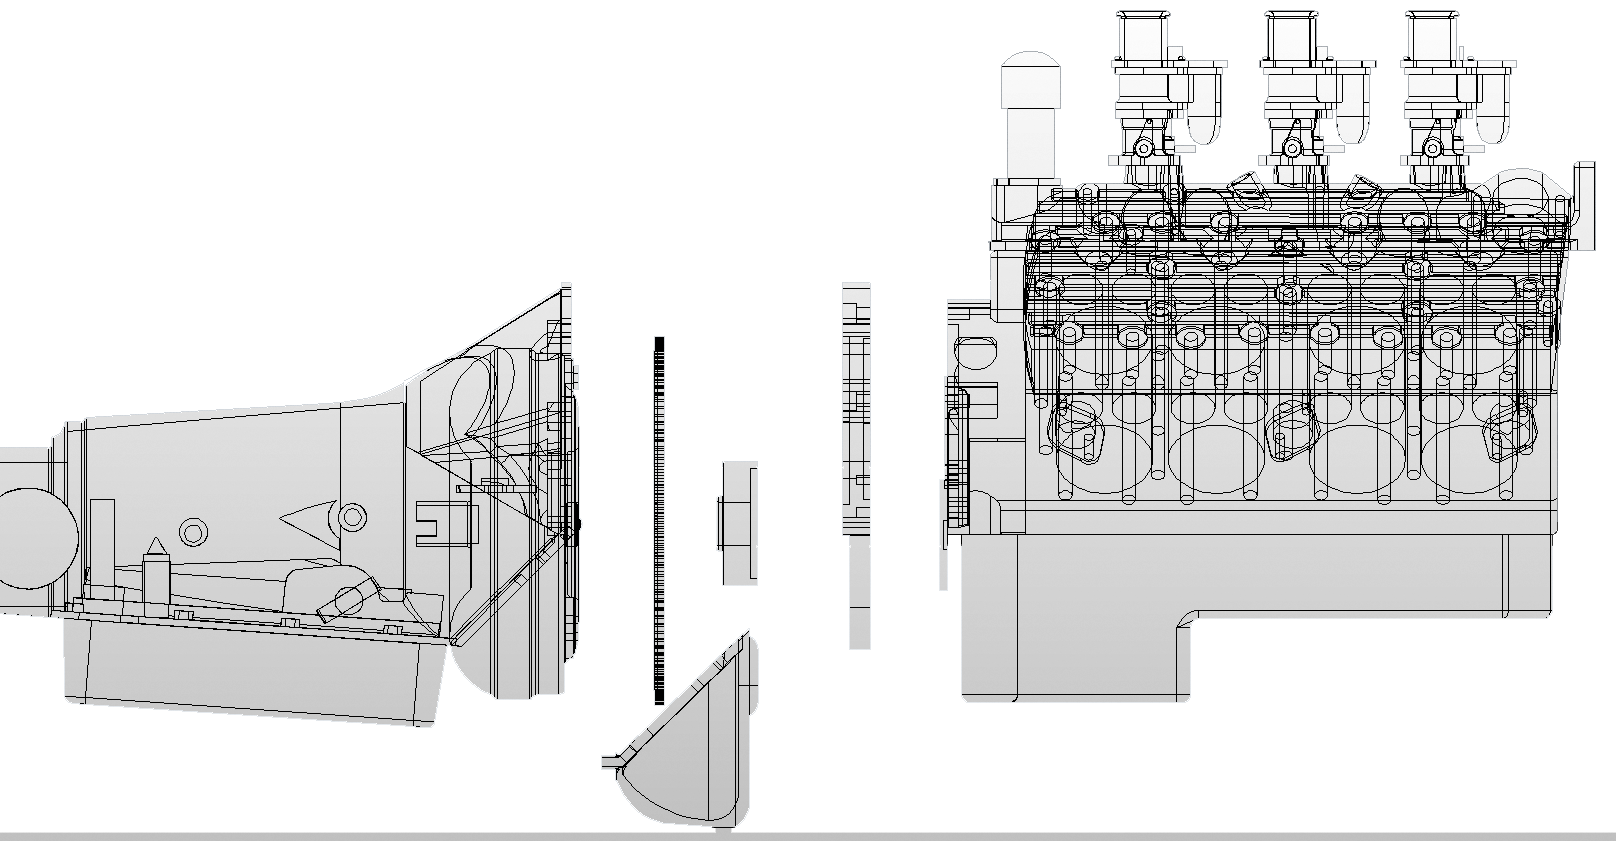 Transmission drawing tech. Wilcap flathead ford v